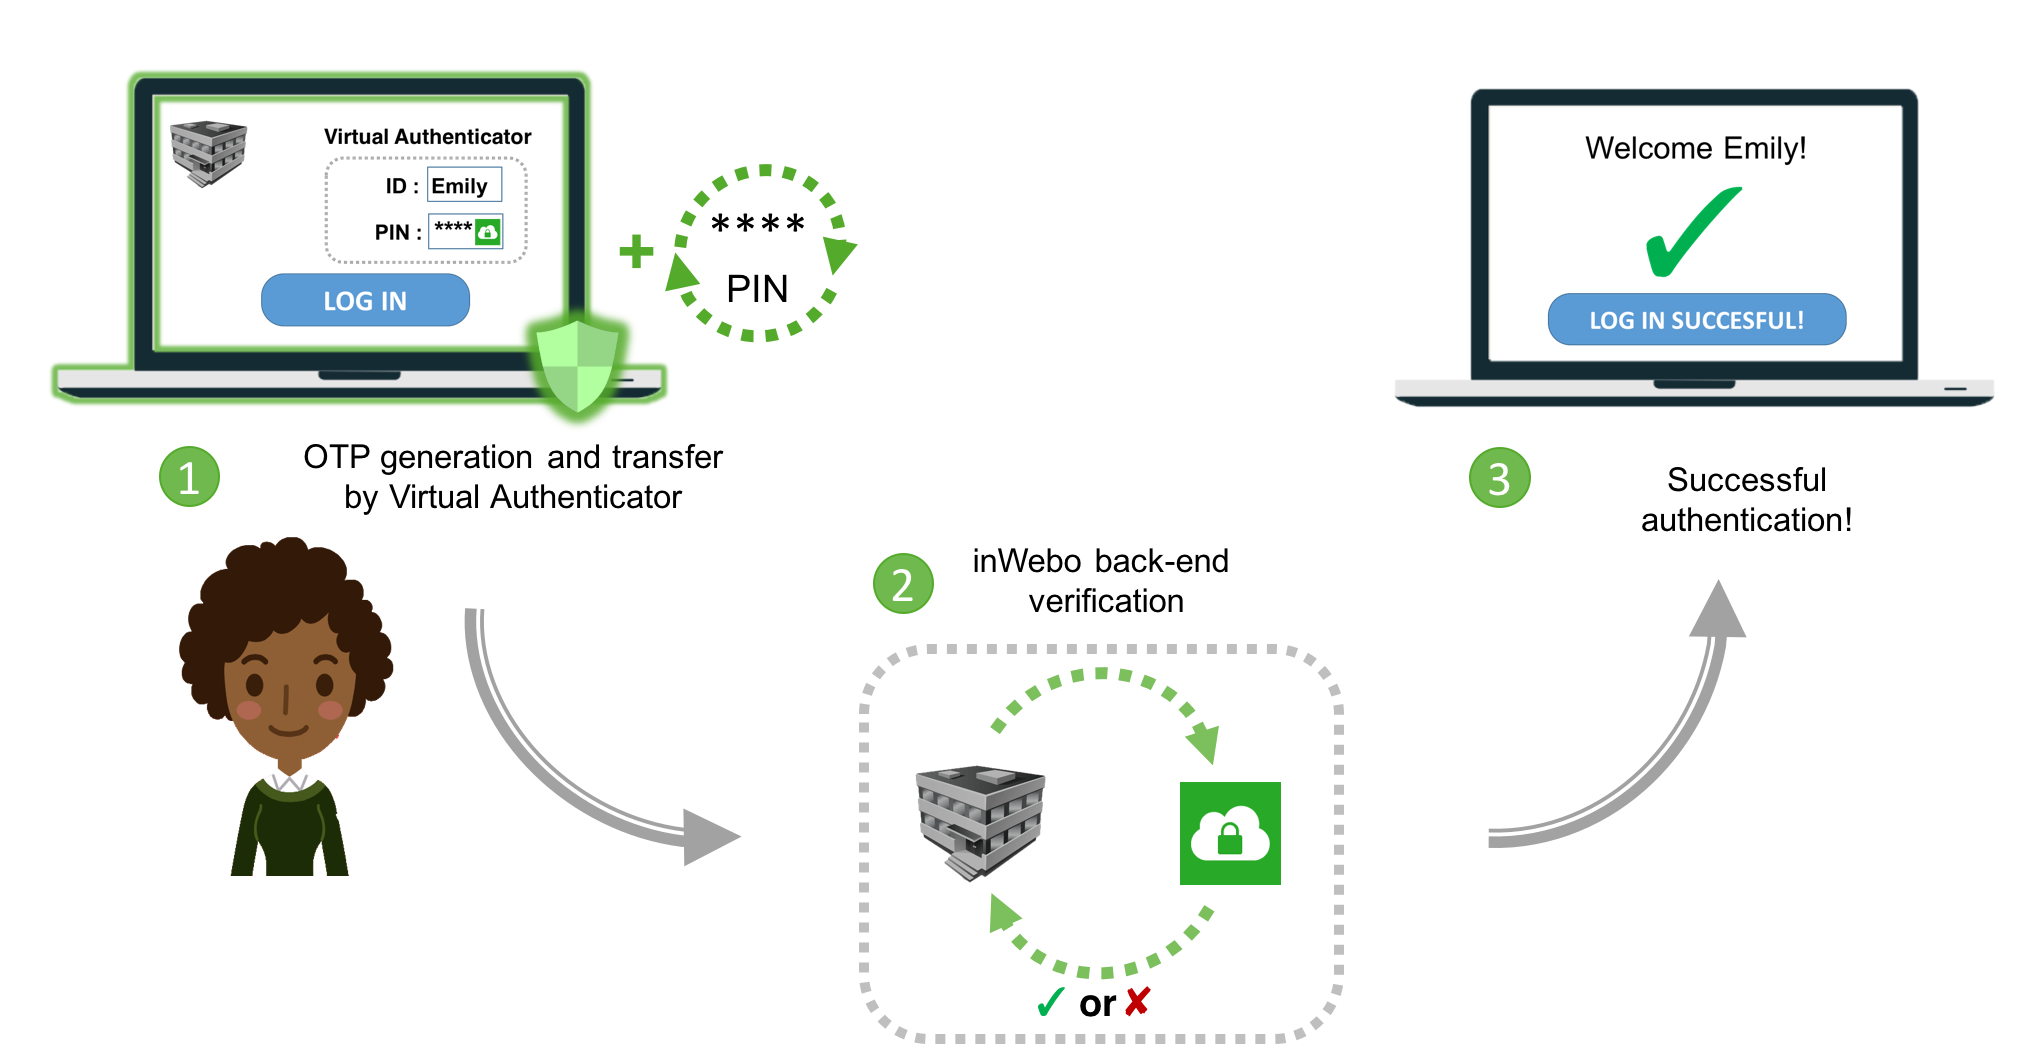 OTP generation using the browser as a trusted device